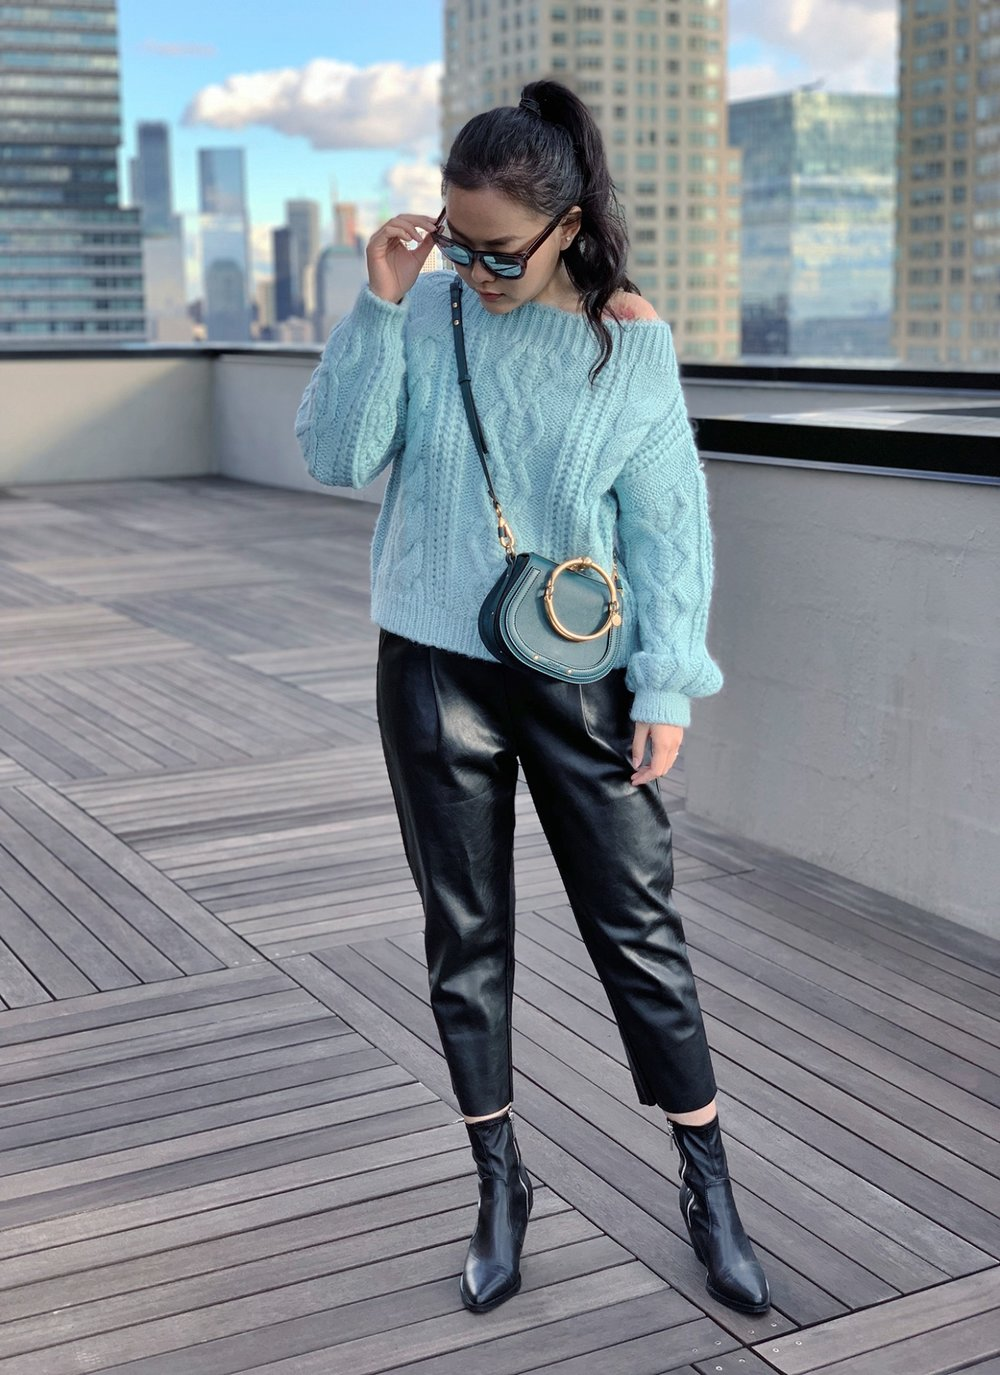 Chunky Sweater Outfits - Look Chic & Not Chunky